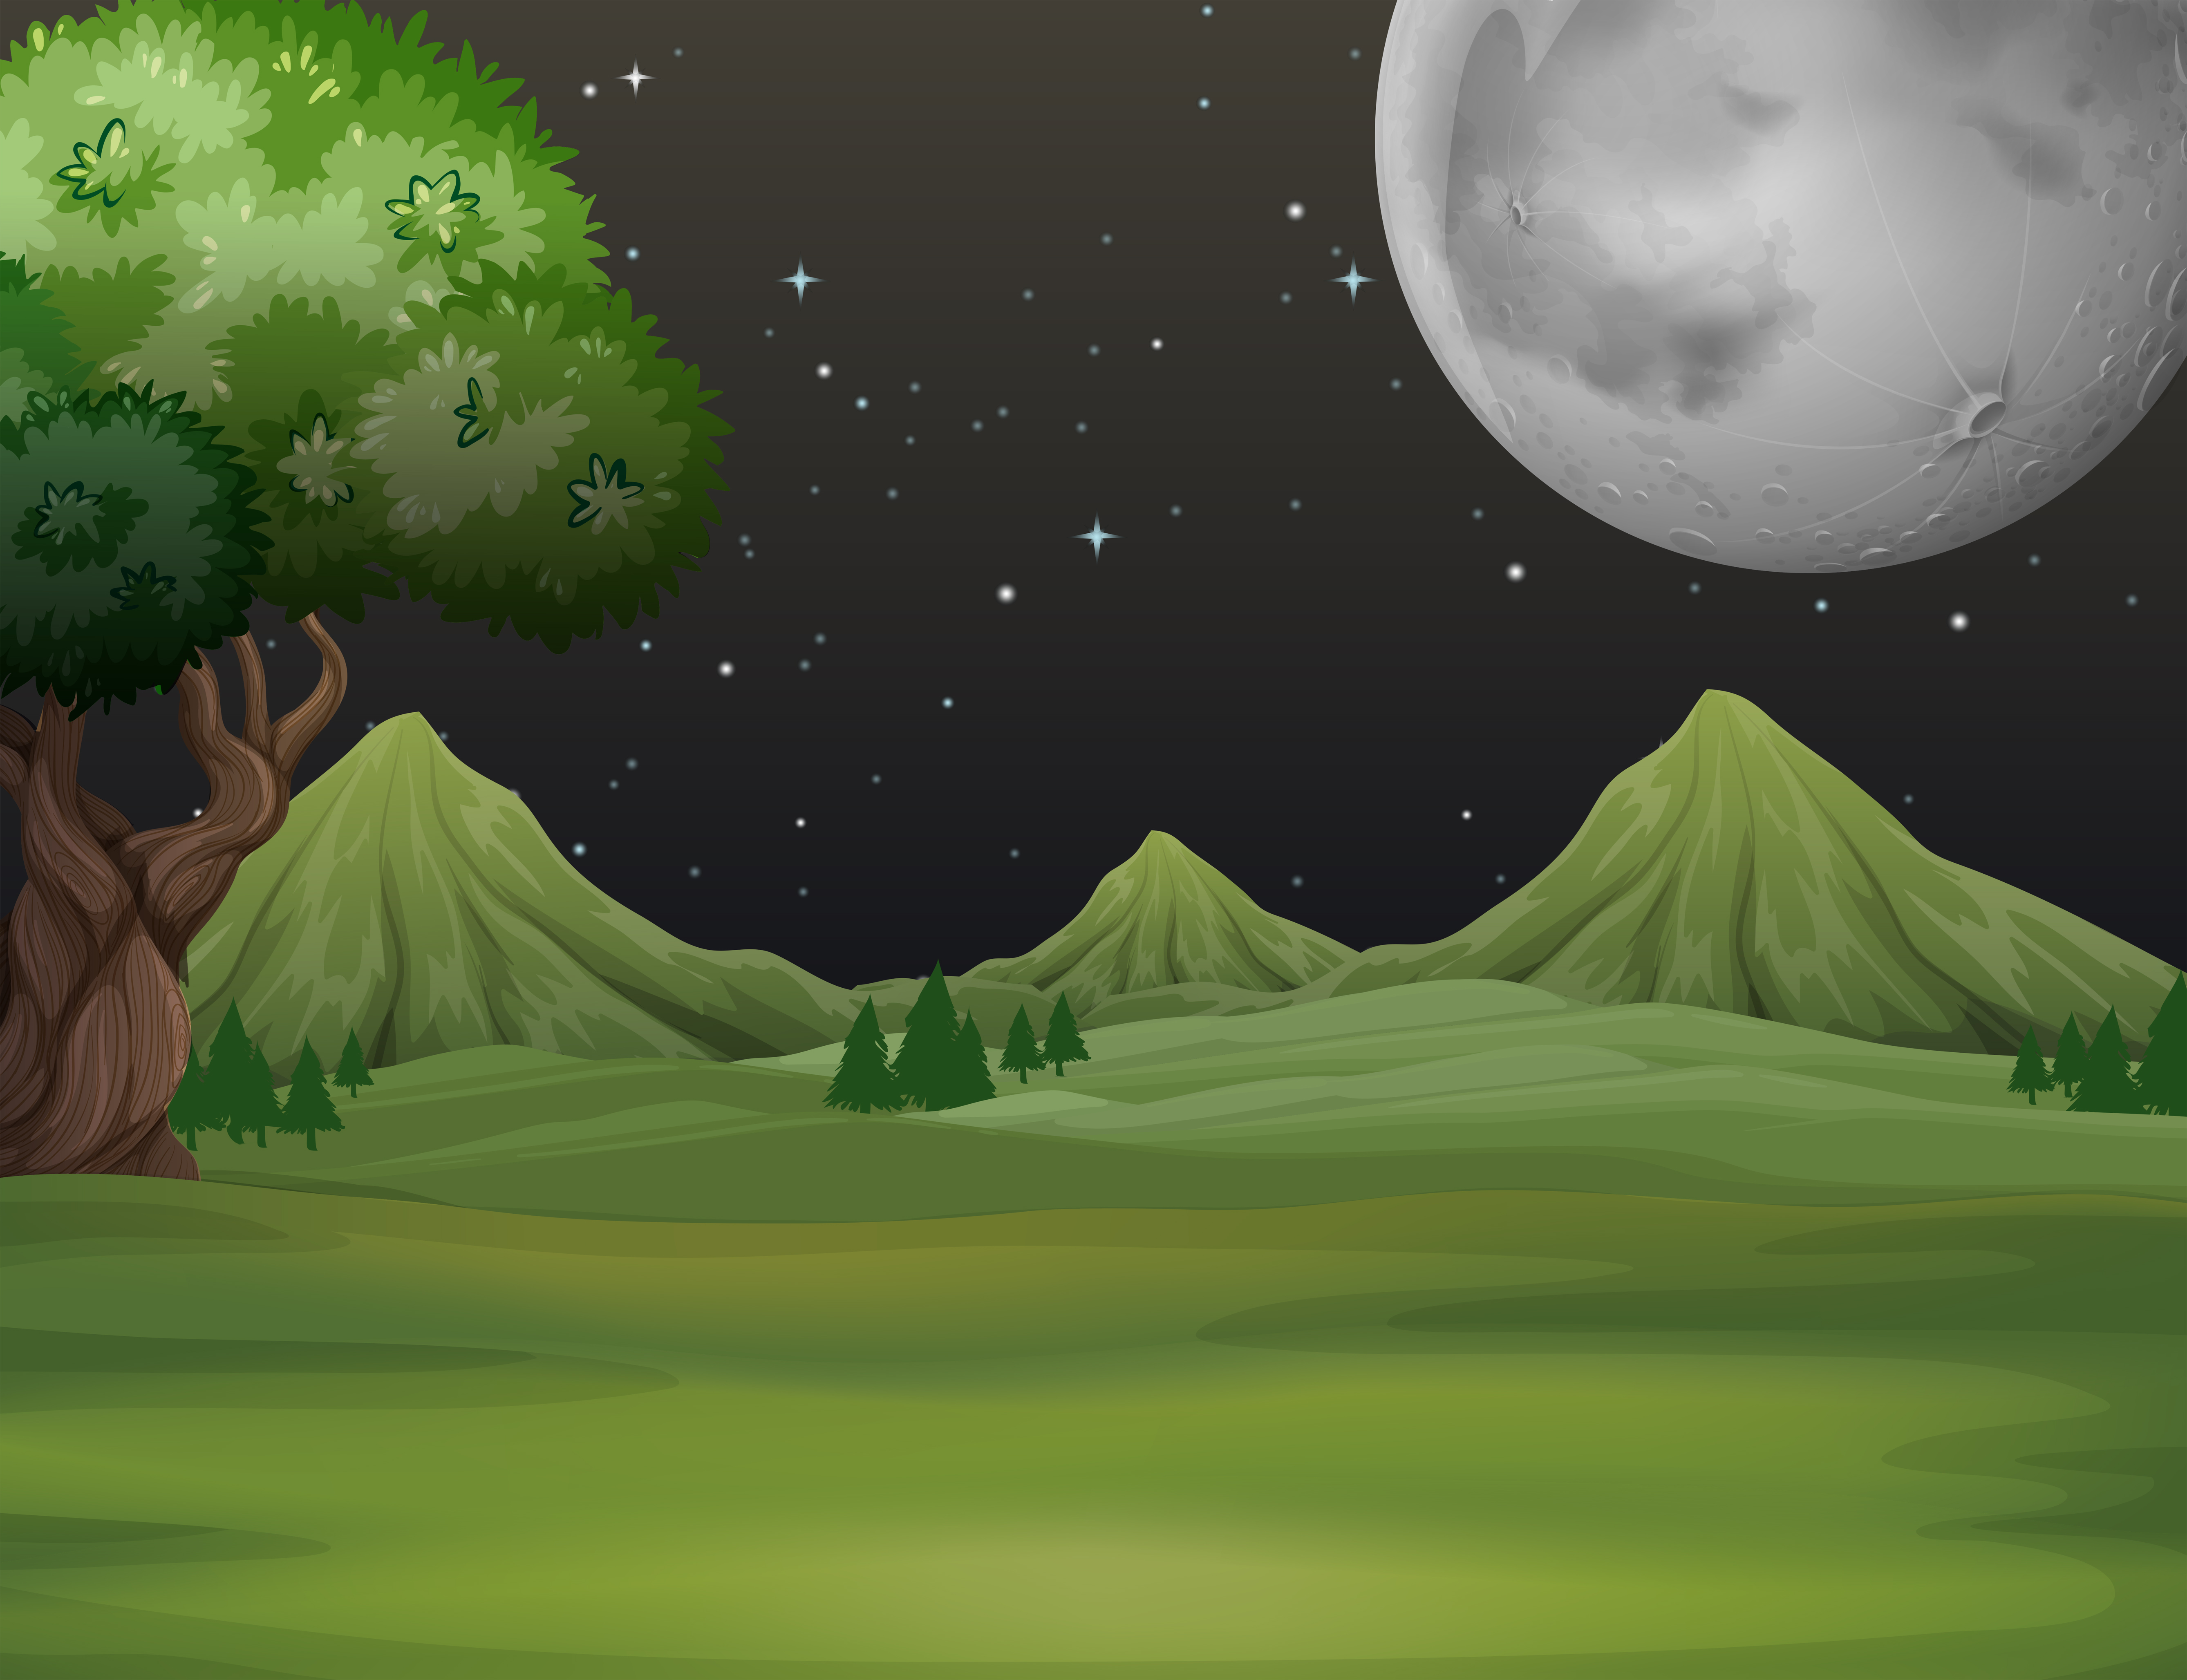 Green Field At Night Time Download Free Vectors Clipart